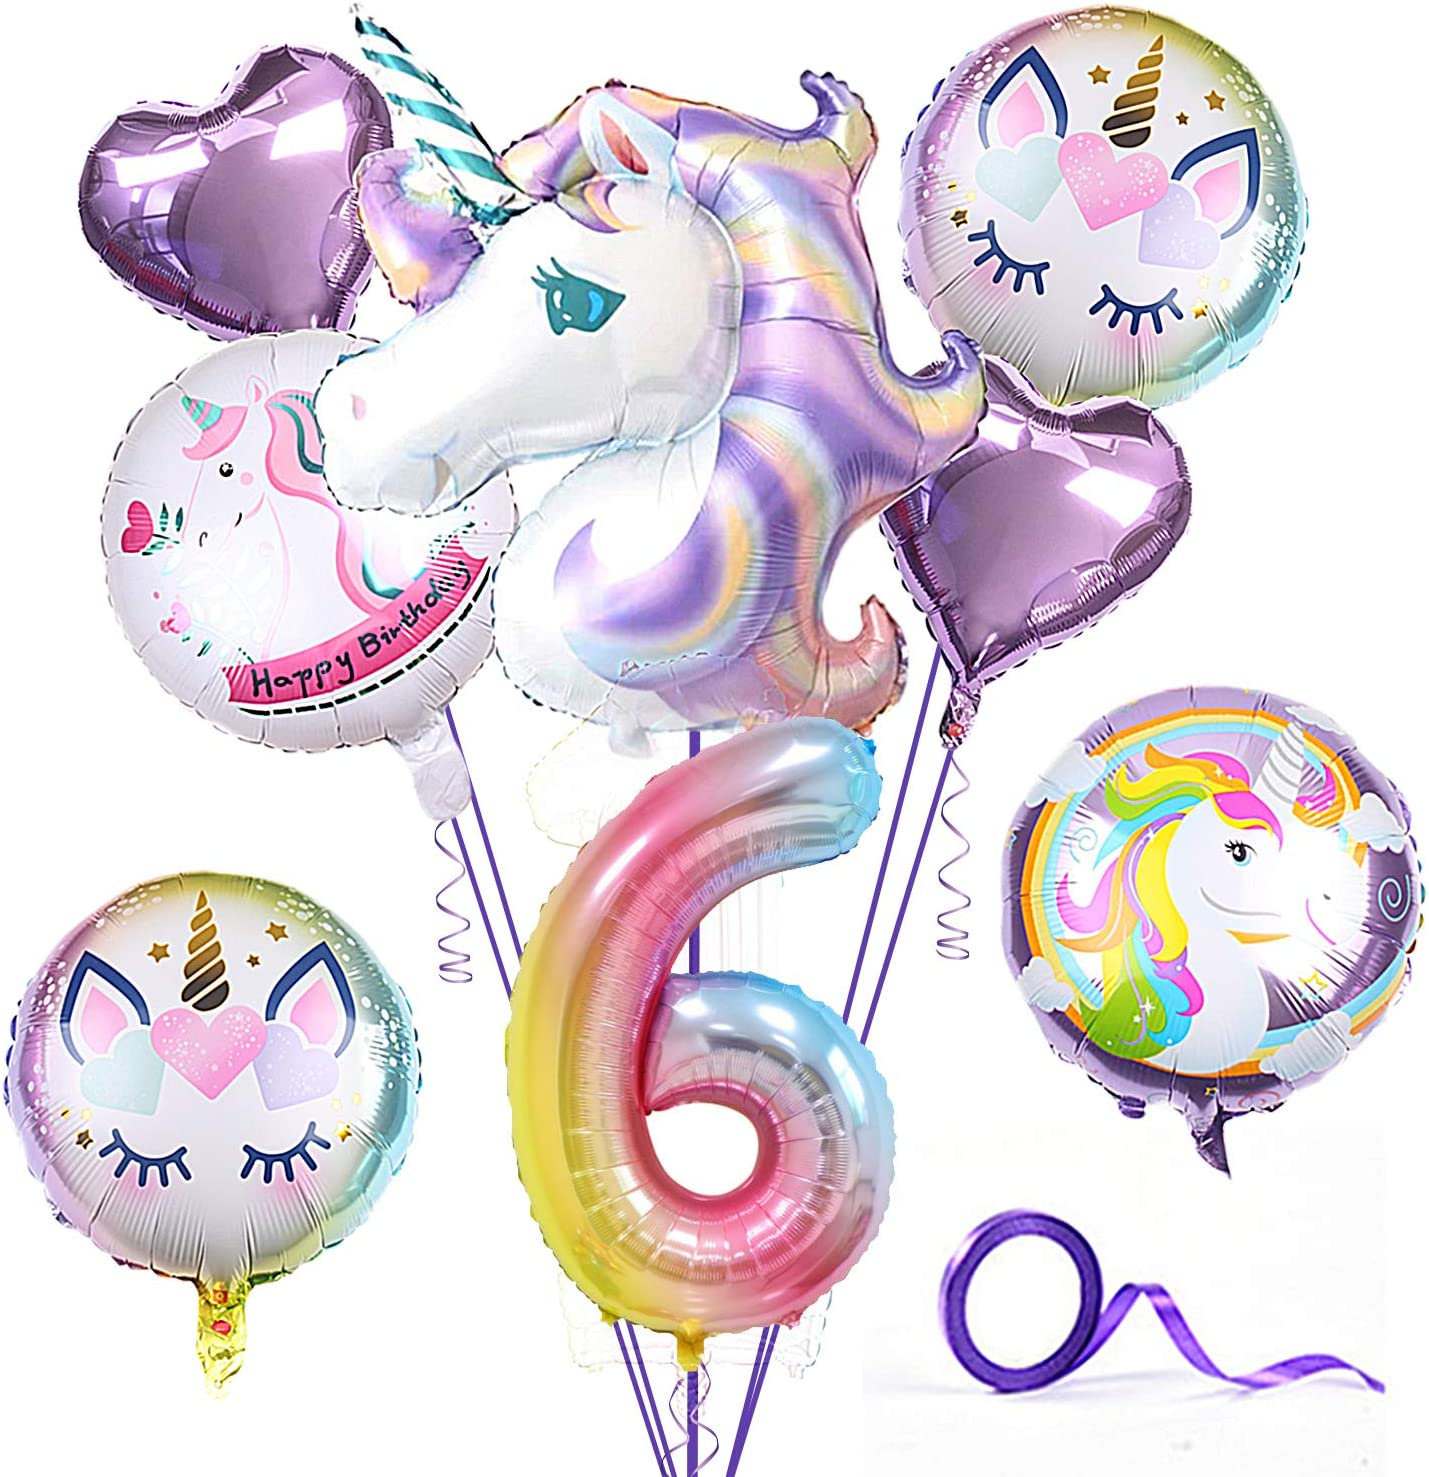 Unicorn Party Birthday Supplies for Girl,Pack of 9 Unicorn Theme Purple Balloon for Party,6-9th Birthday Party Decorations,Home Office Decor,Gift for Baby (6 Years)